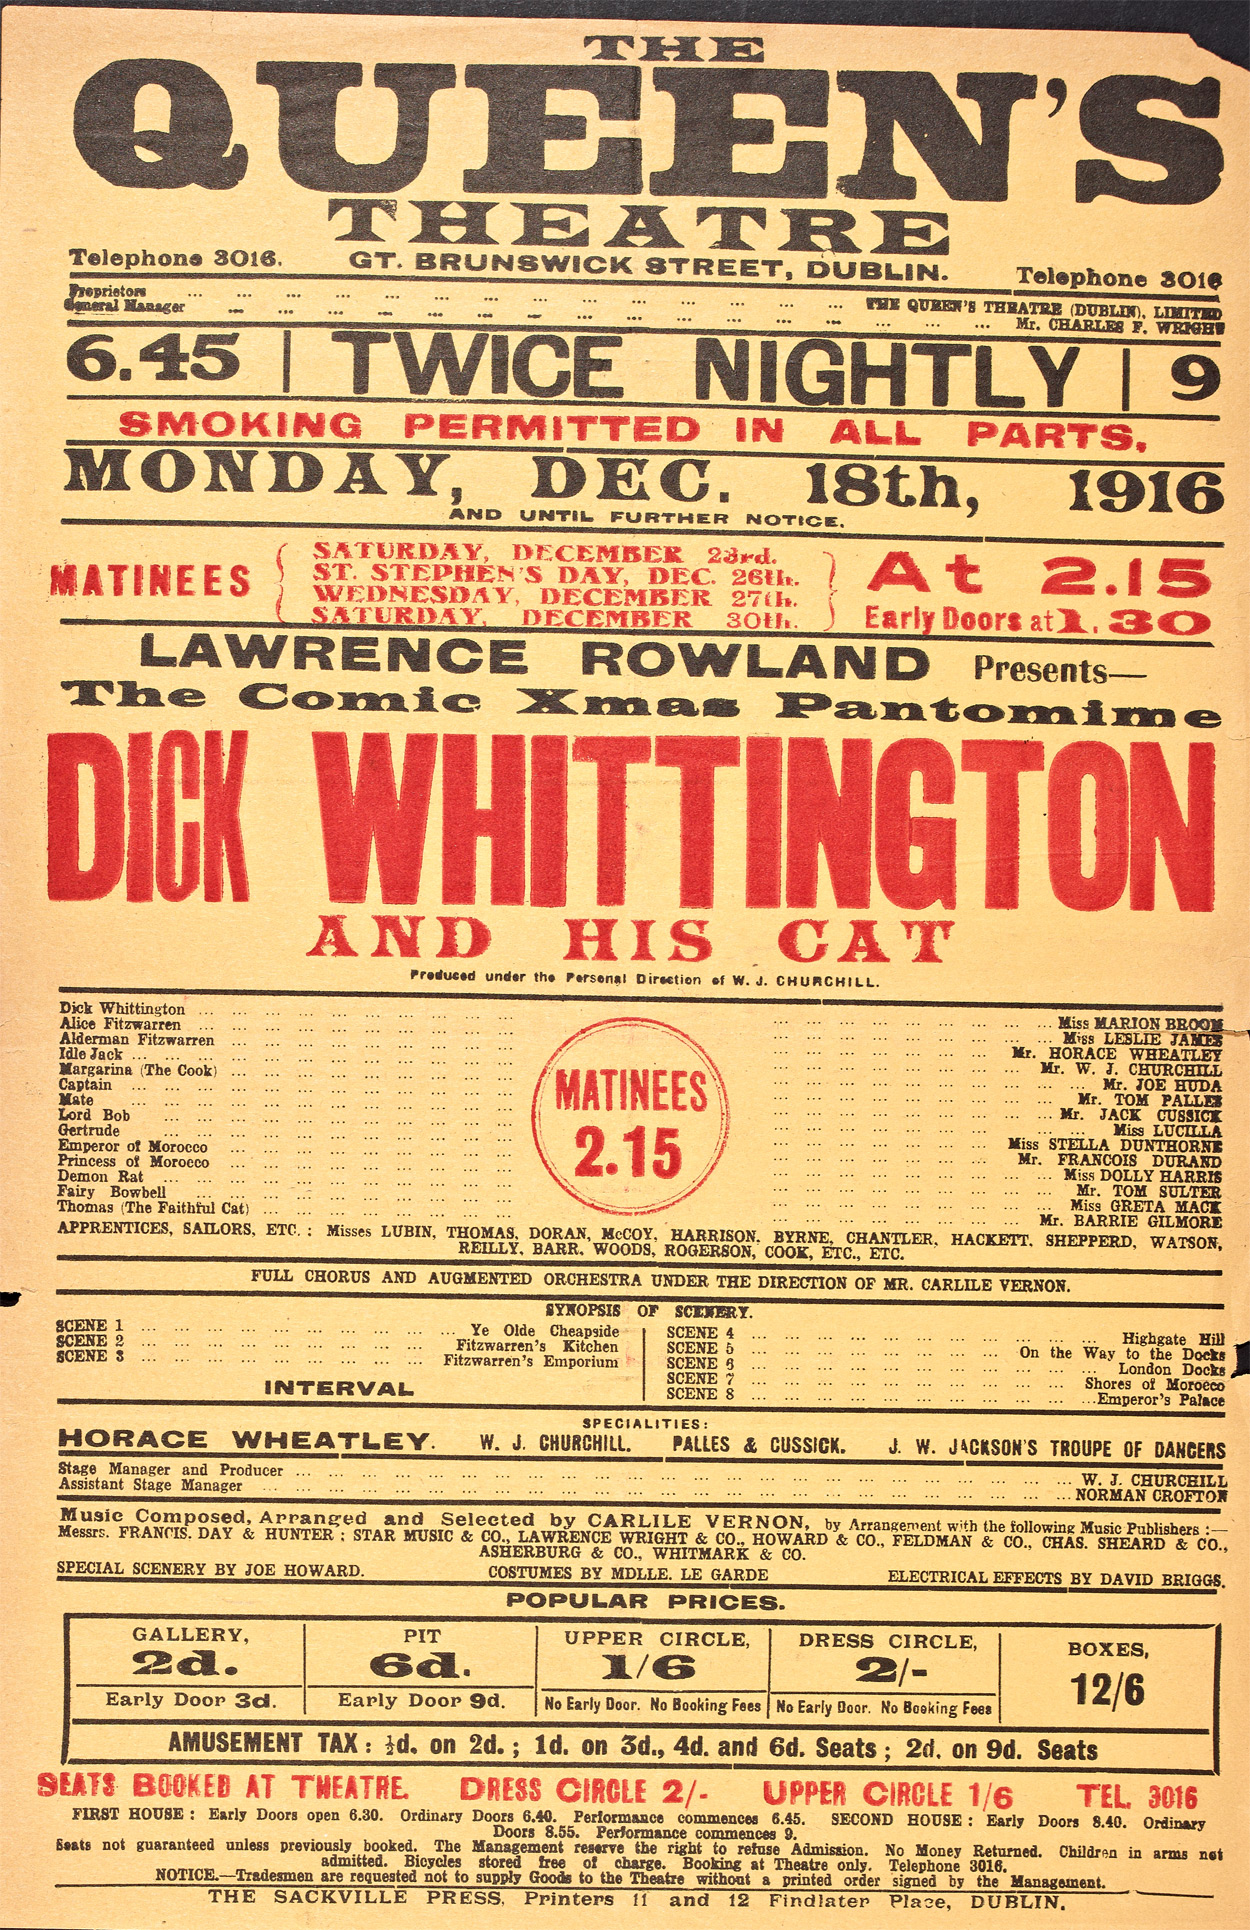 Pastomimes - Dick Whittington and his Cat